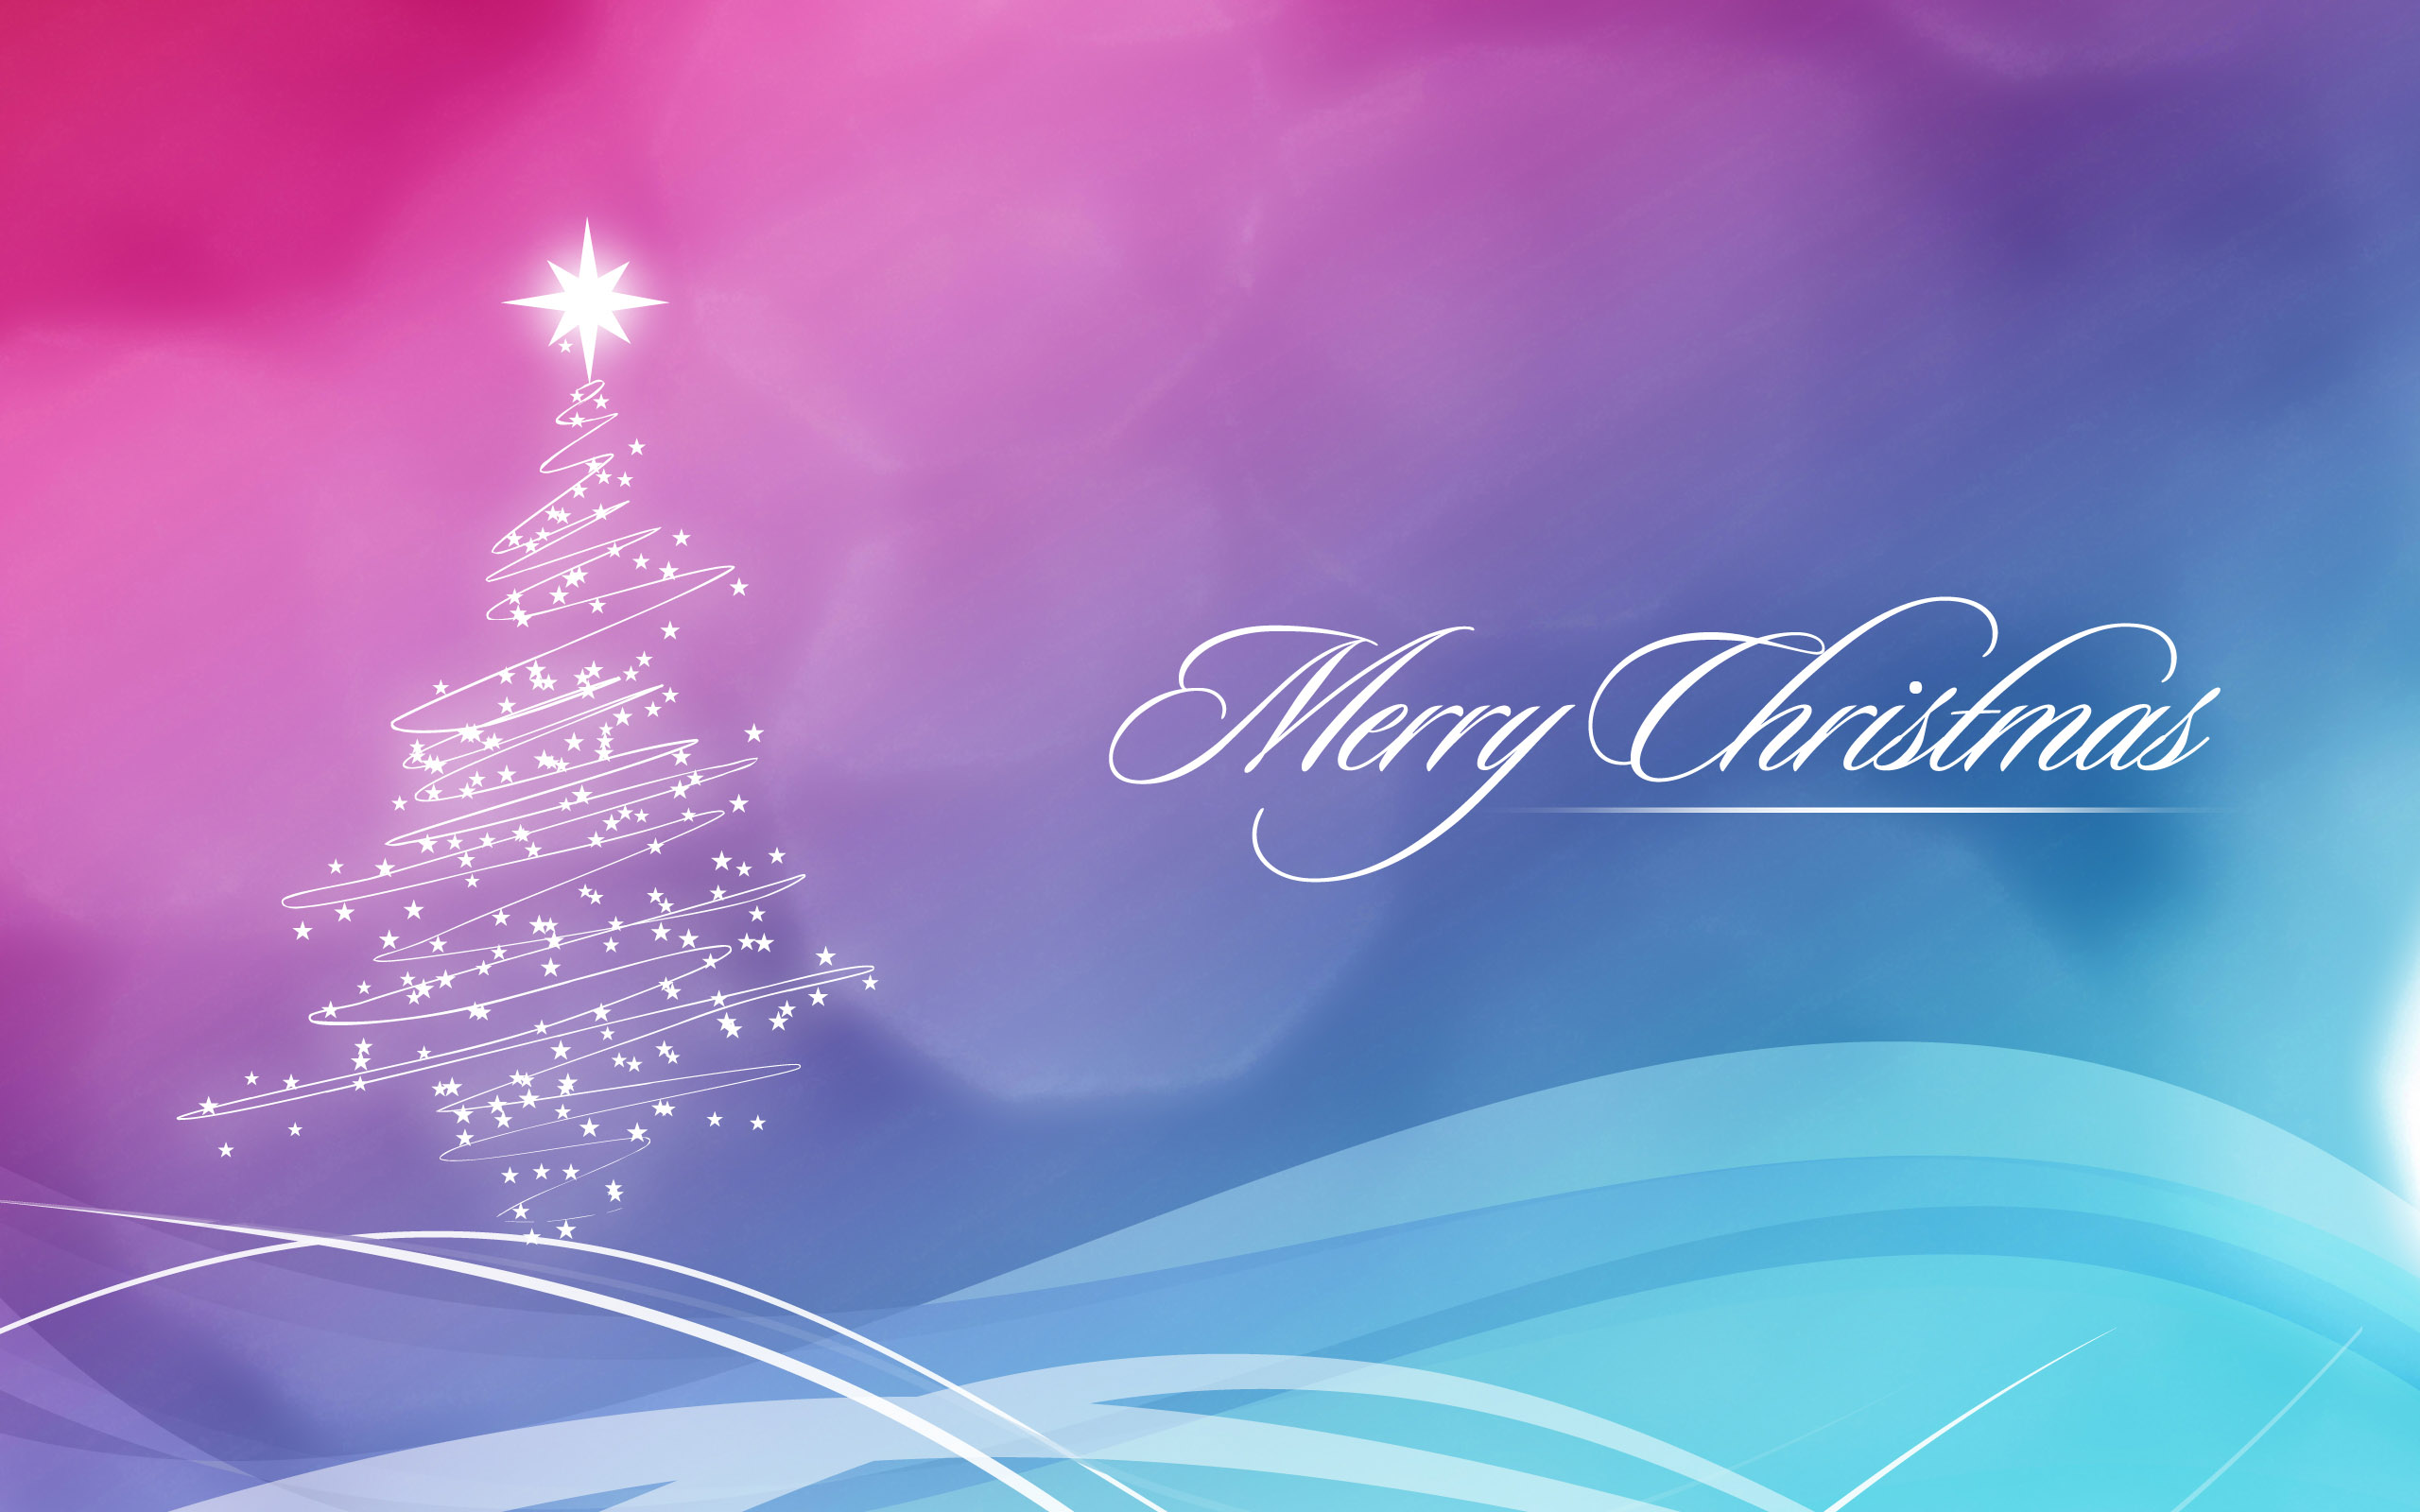 Merry Christmas Wallpapers HD 2017 download 2560x1600